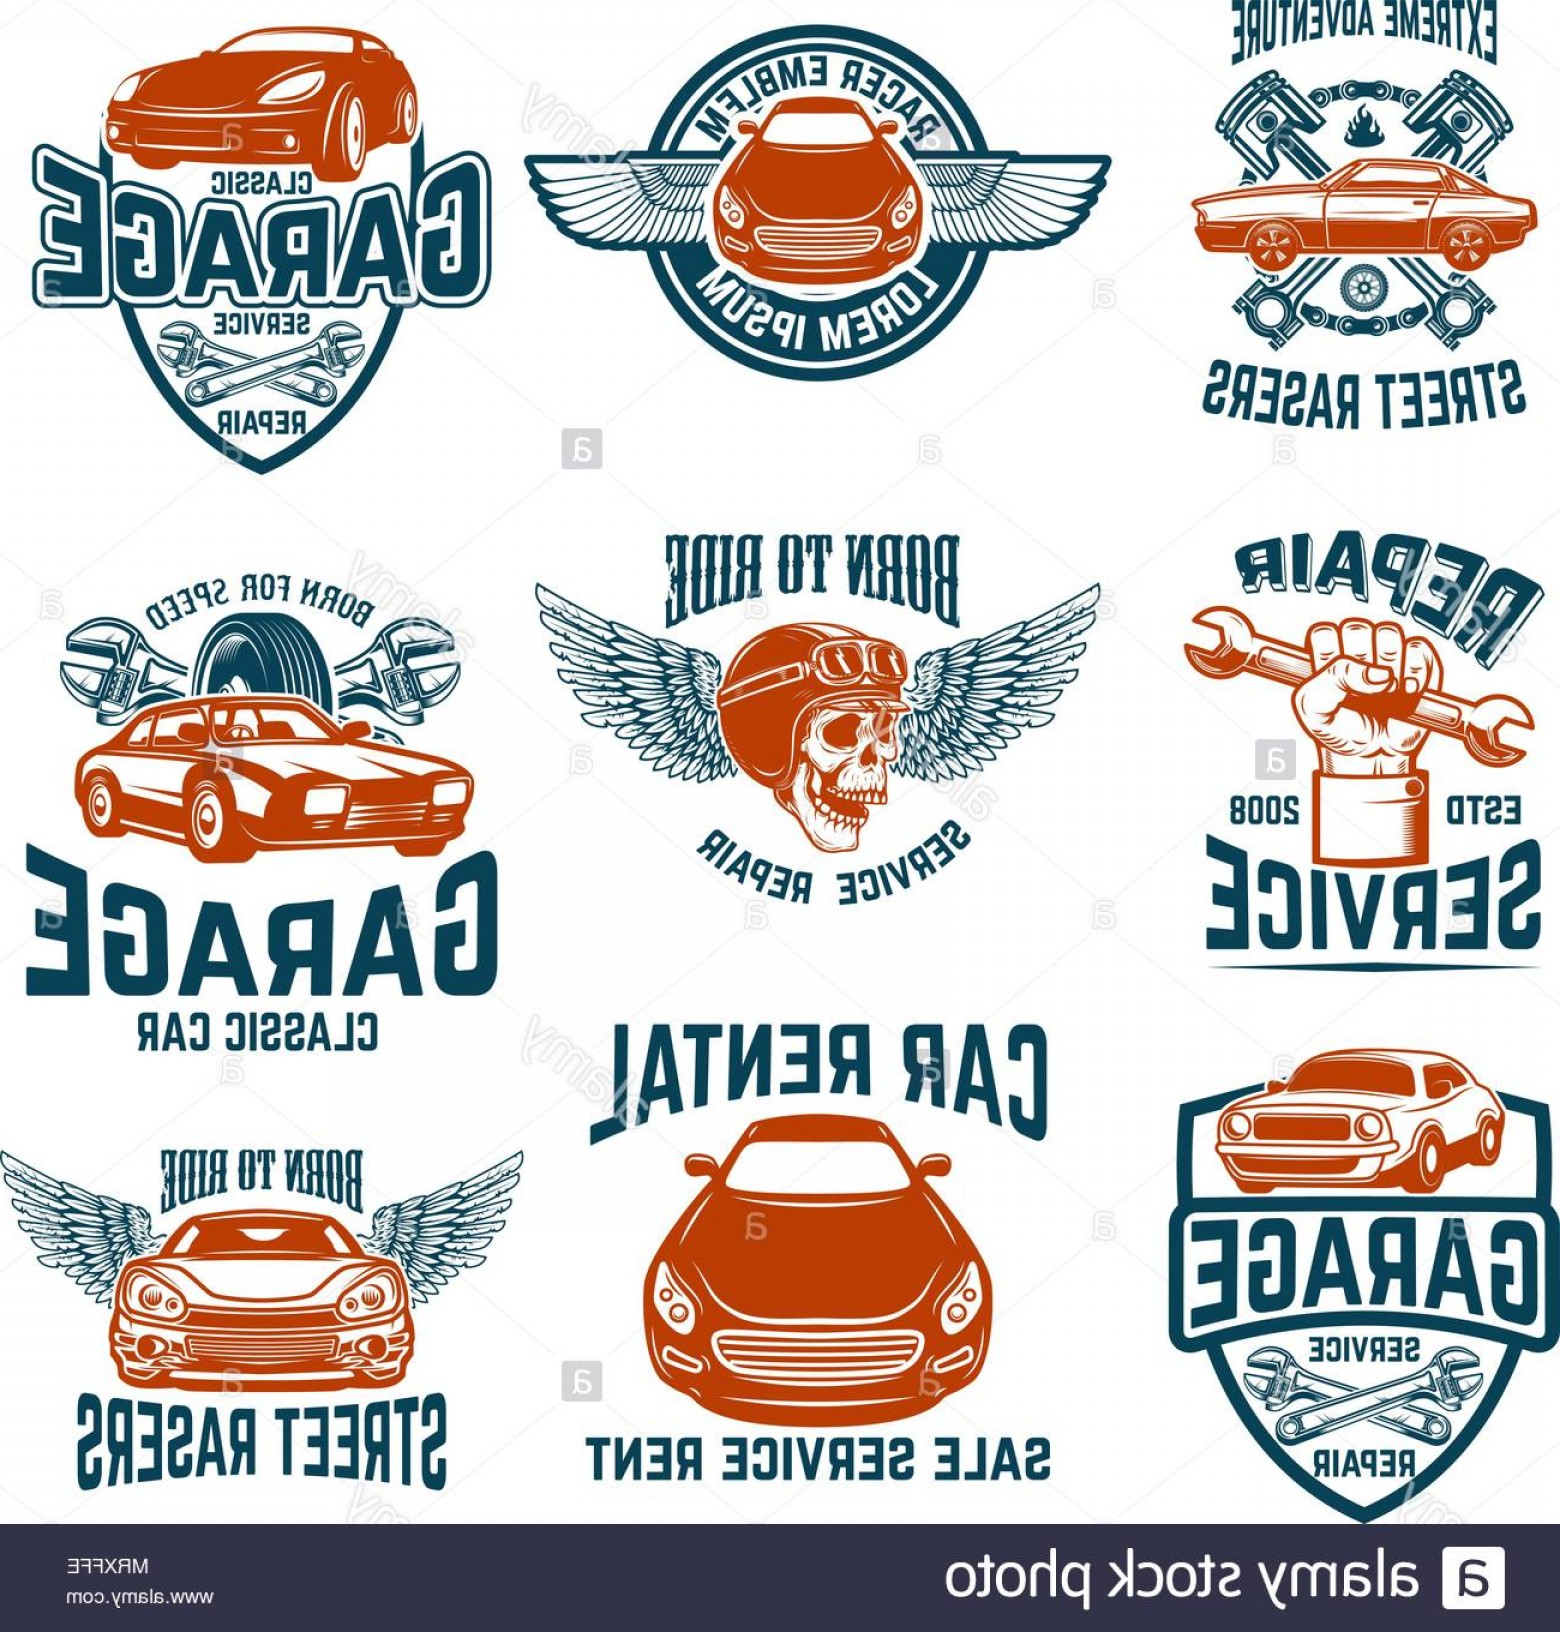 Car Repair Garage Auto Service Emblems Design Elements For Logo.